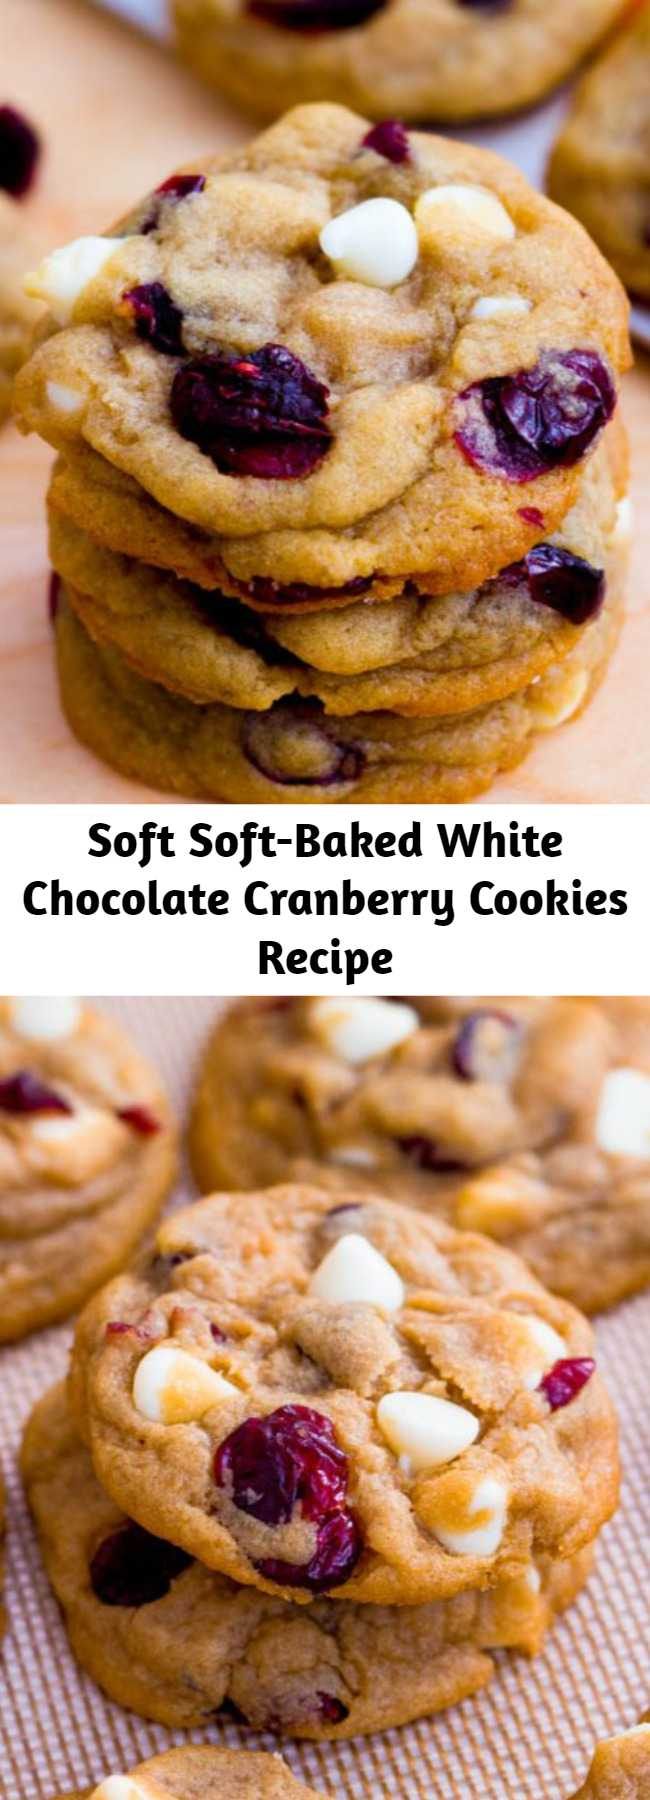 Soft Soft-Baked White Chocolate Cranberry Cookies Recipe - Perfectly soft and thick white chocolate cranberry cookies. The cornstarch is the secret! One of my favorite flavor combinations ever!